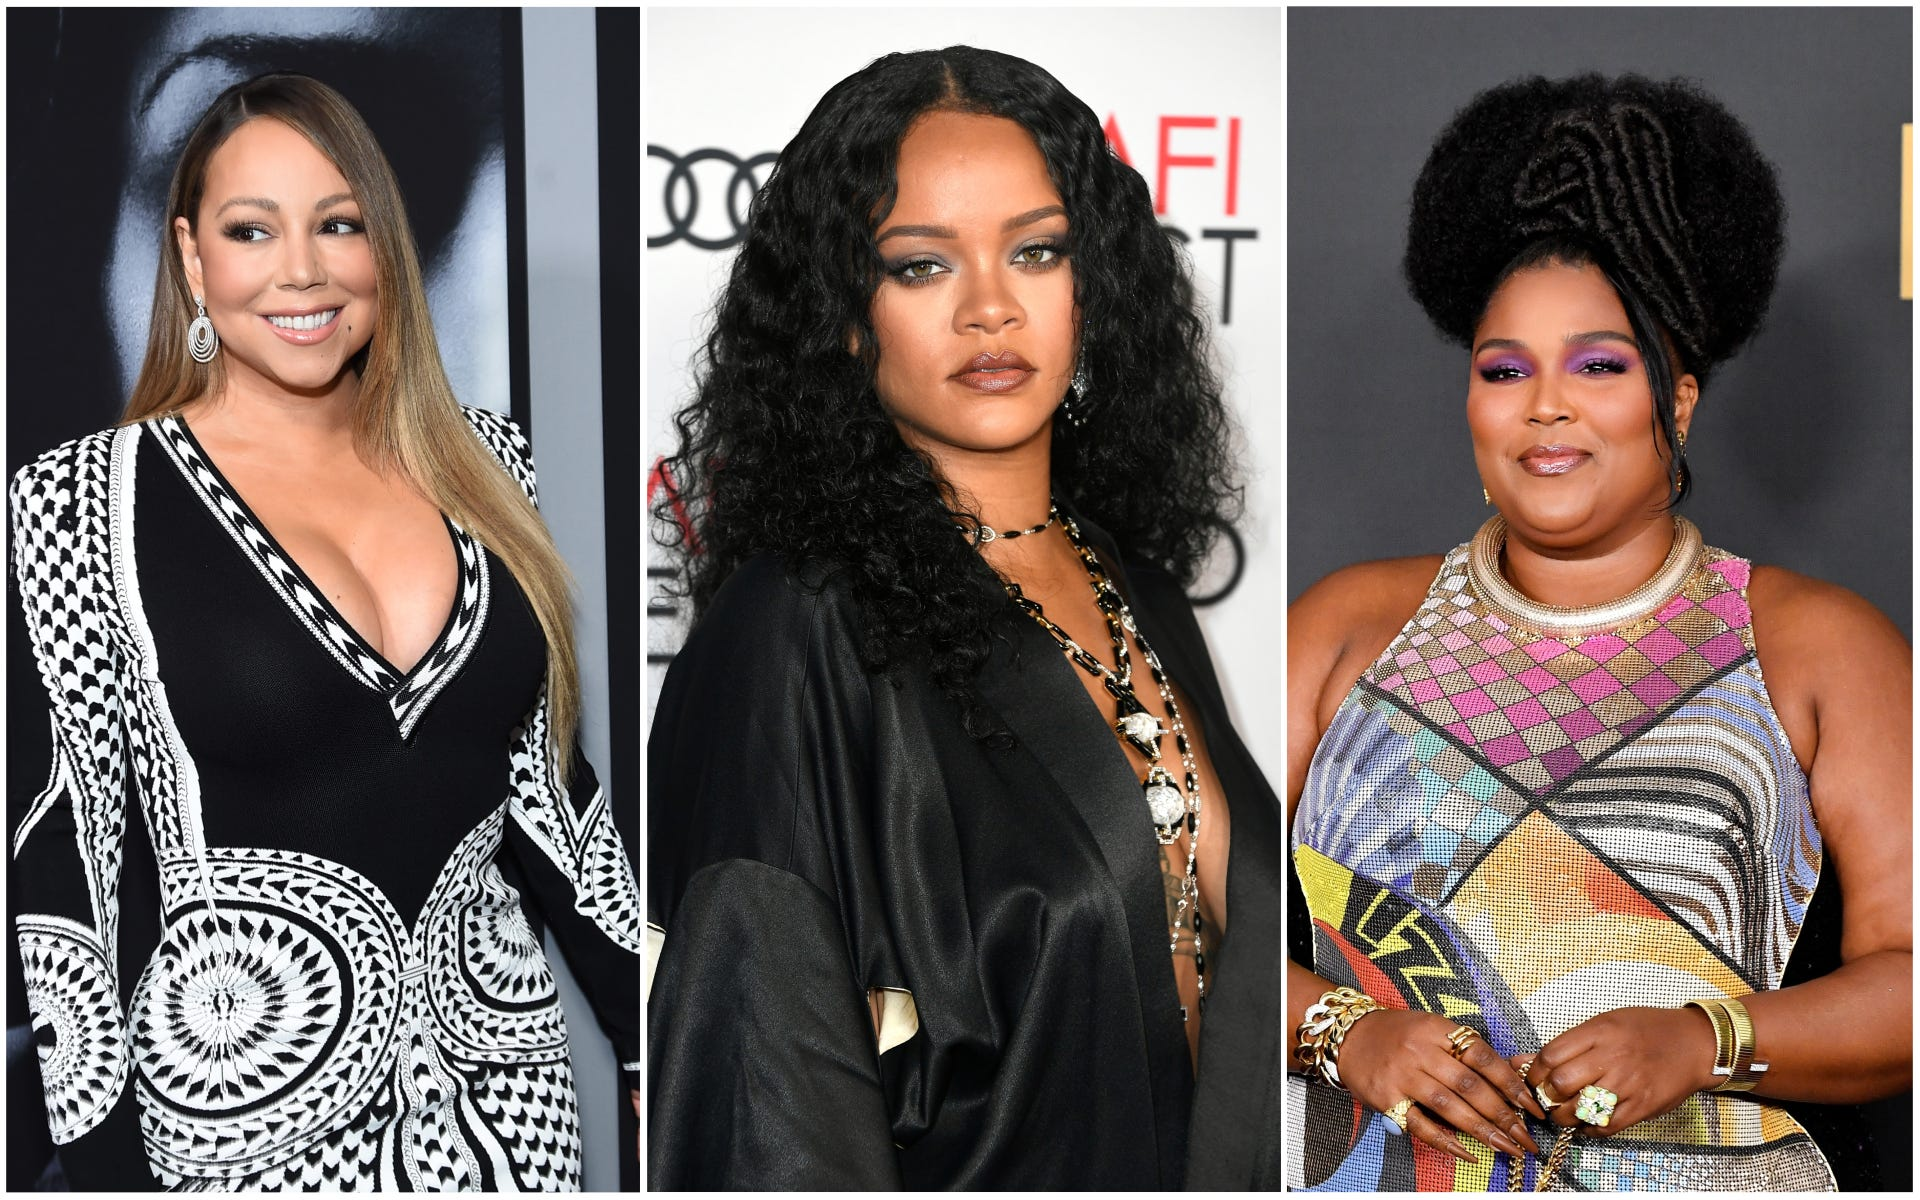 50-A is repealed: Rihanna, Lizzo, hundreds of entertainers called for police reform